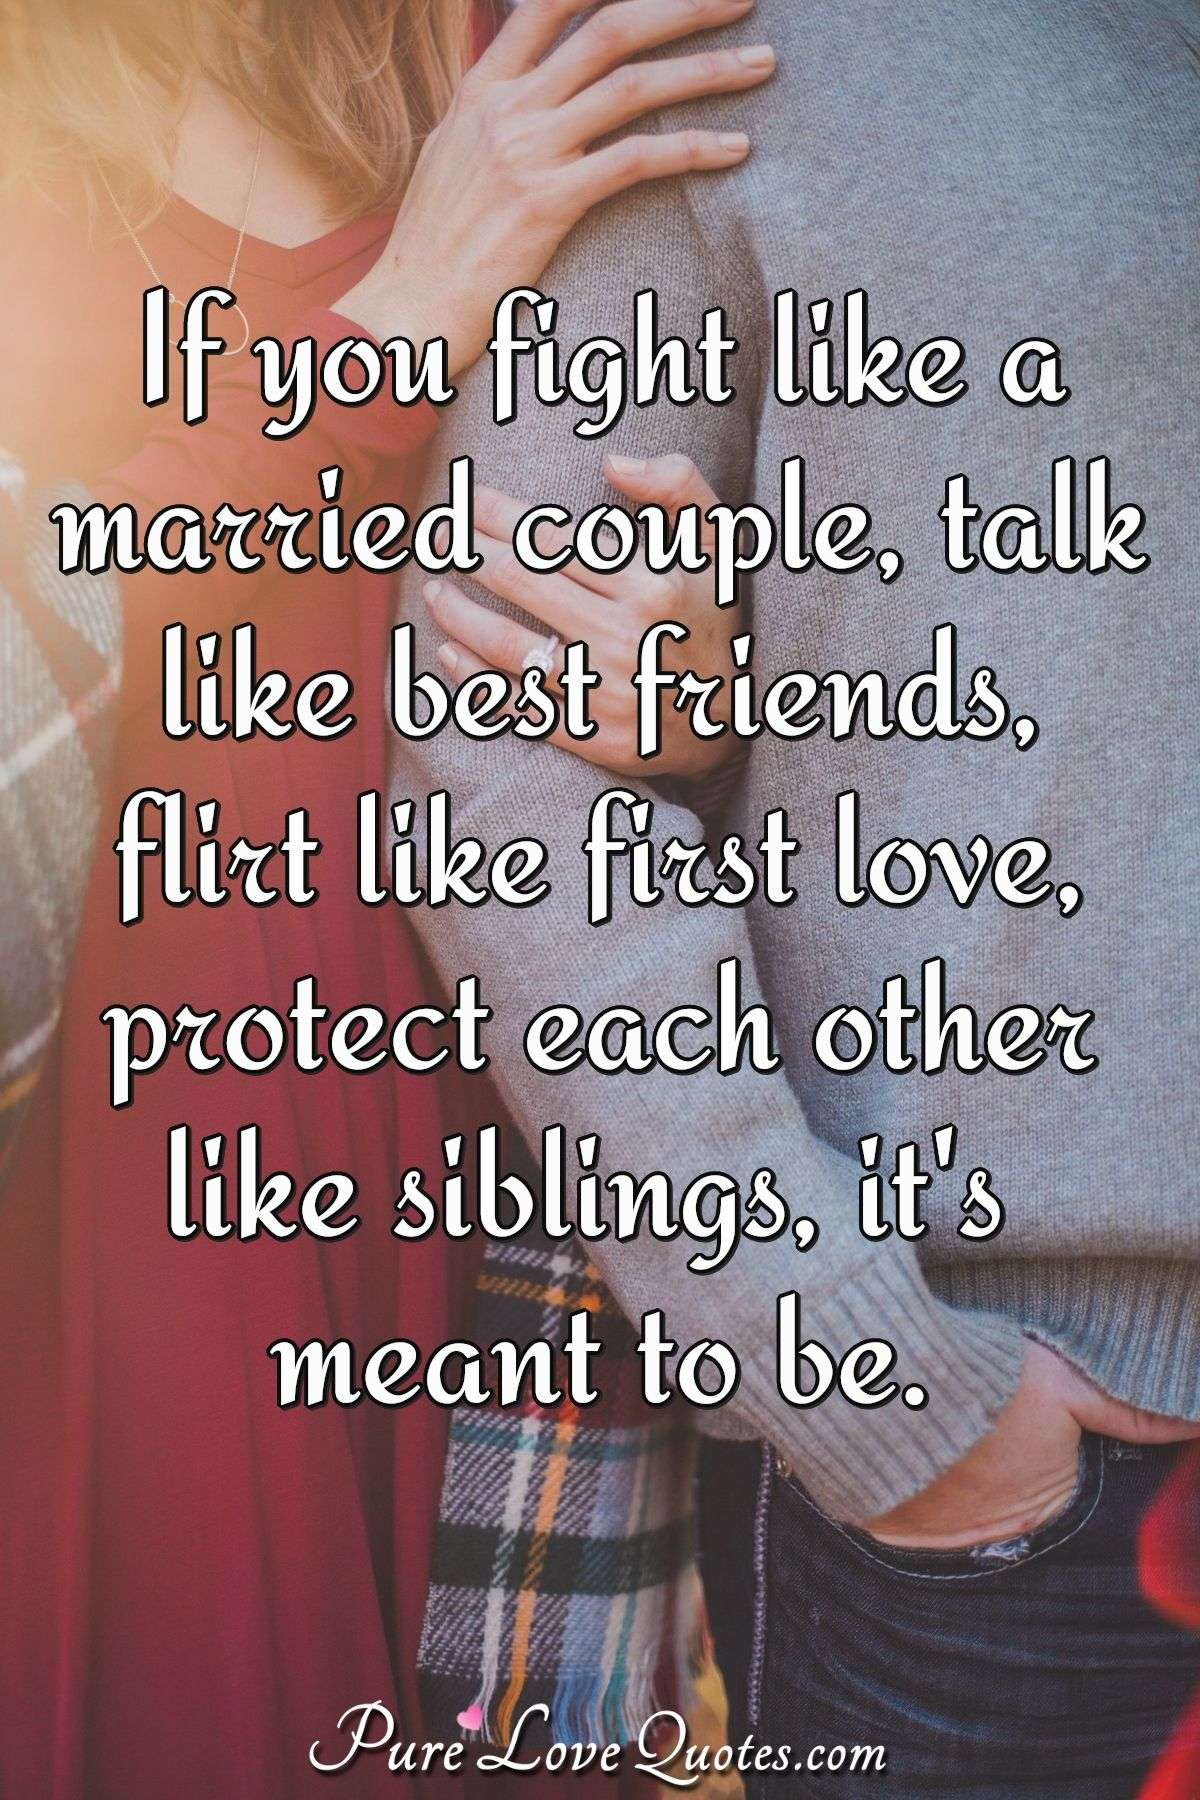 If you fight like a married couple, talk like best friends, flirt like first love, protect each other like siblings, it's meant to be. - Anonymous